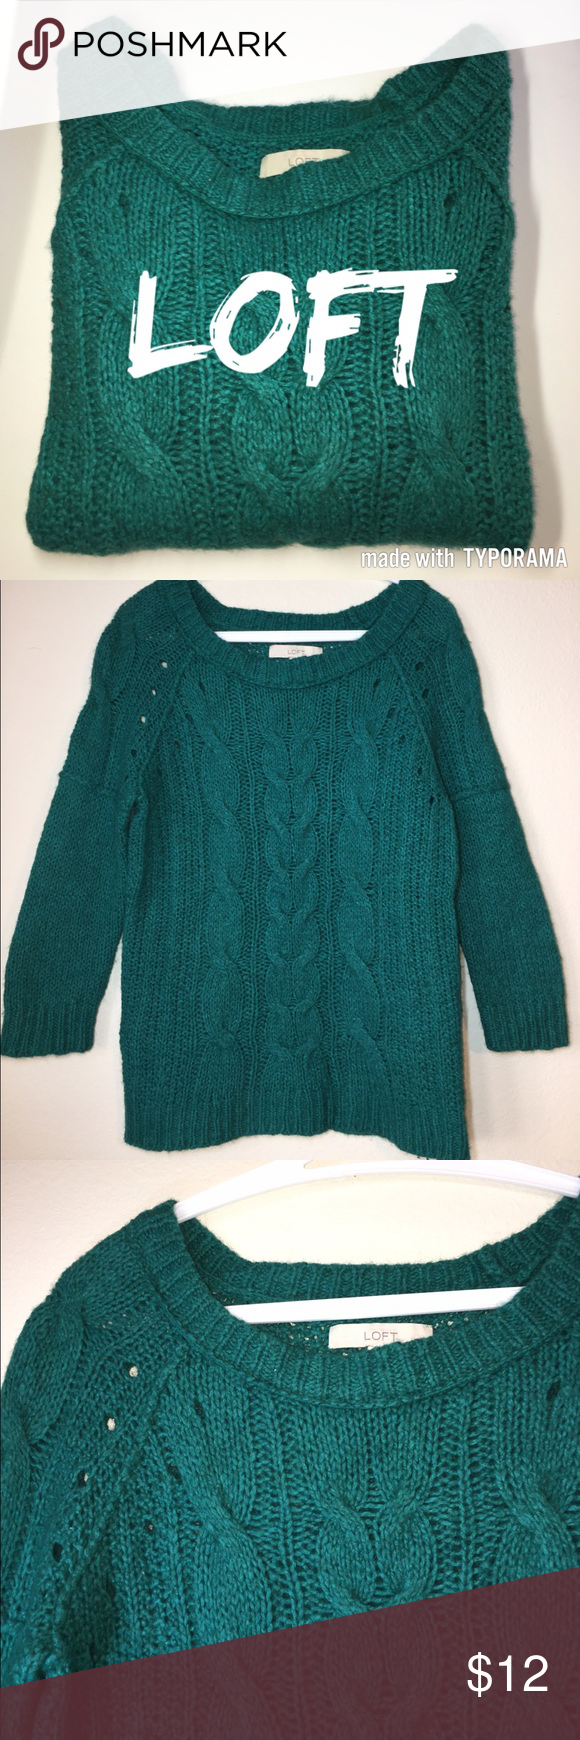 👛SALE👛 LOFT Cable Knit Sweater | Cable knit sweaters, Cable ...